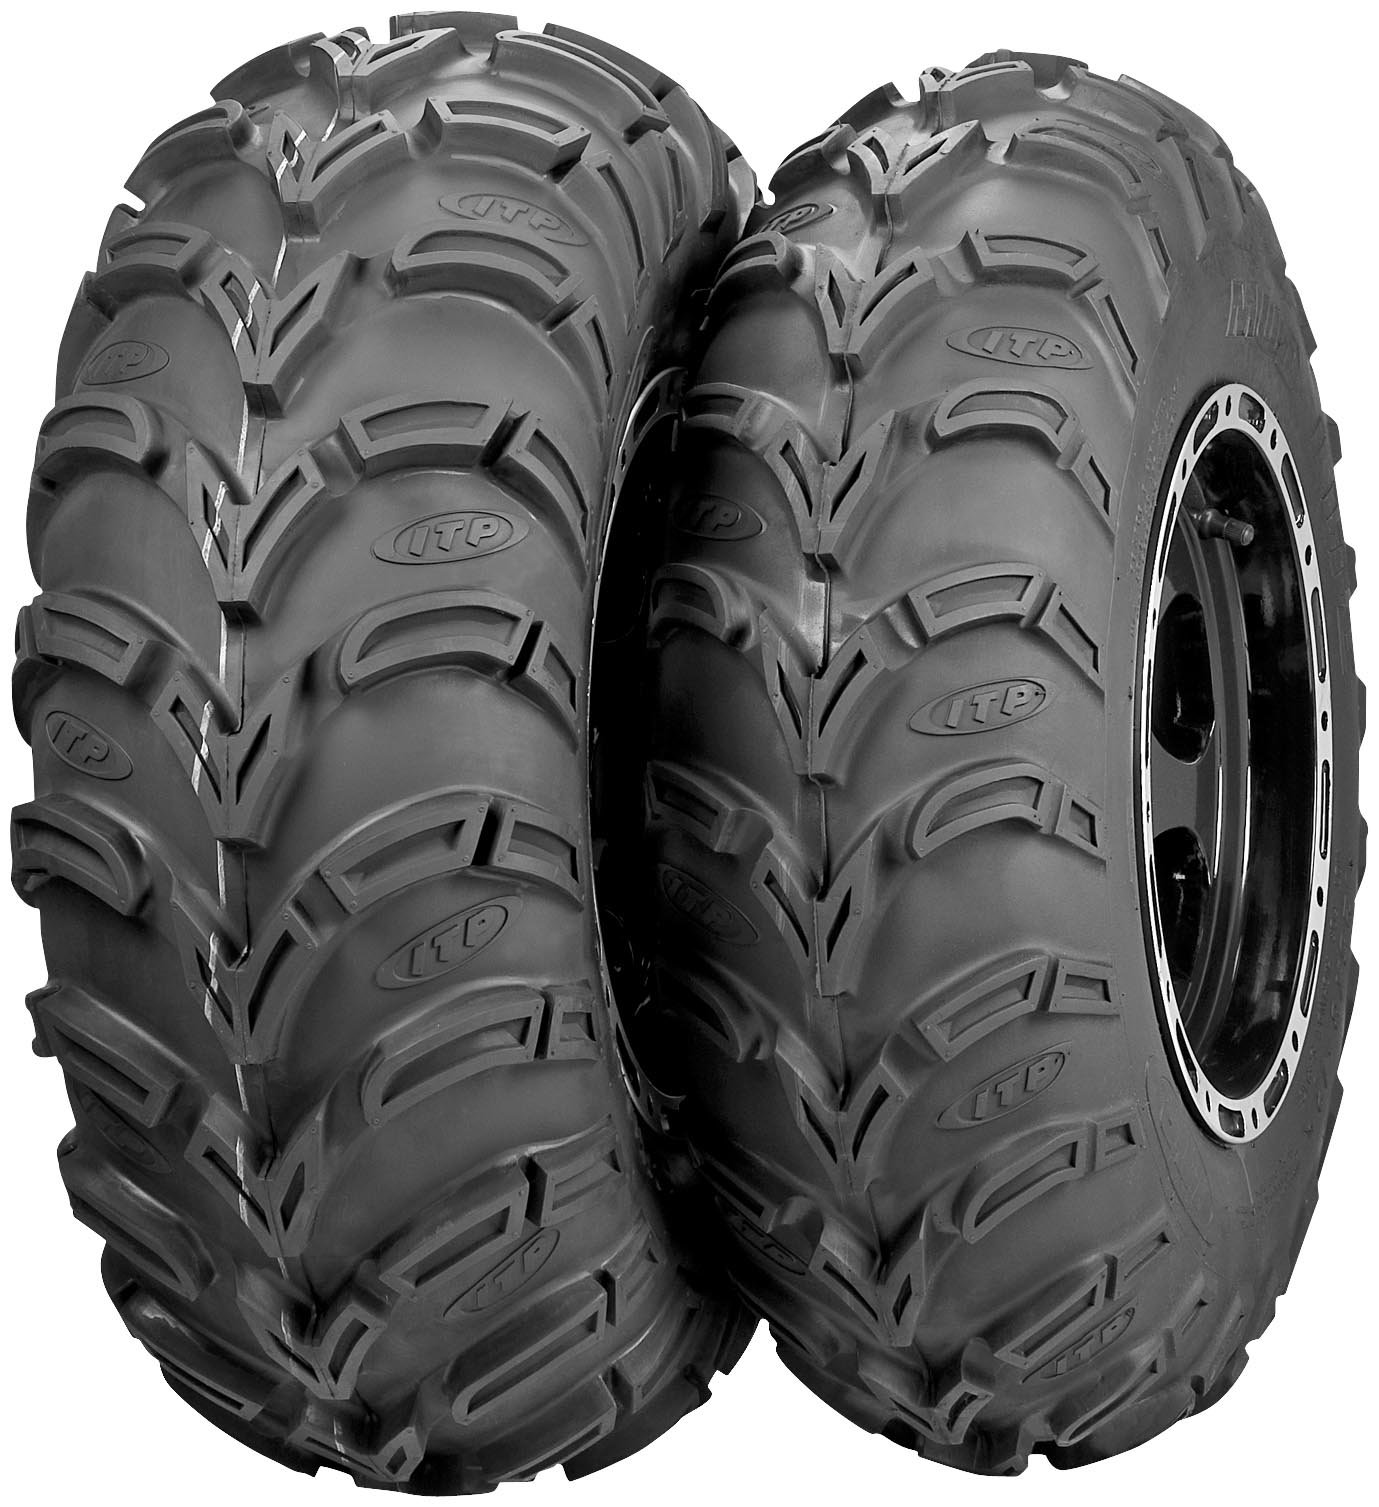 ATV Wheels Tires